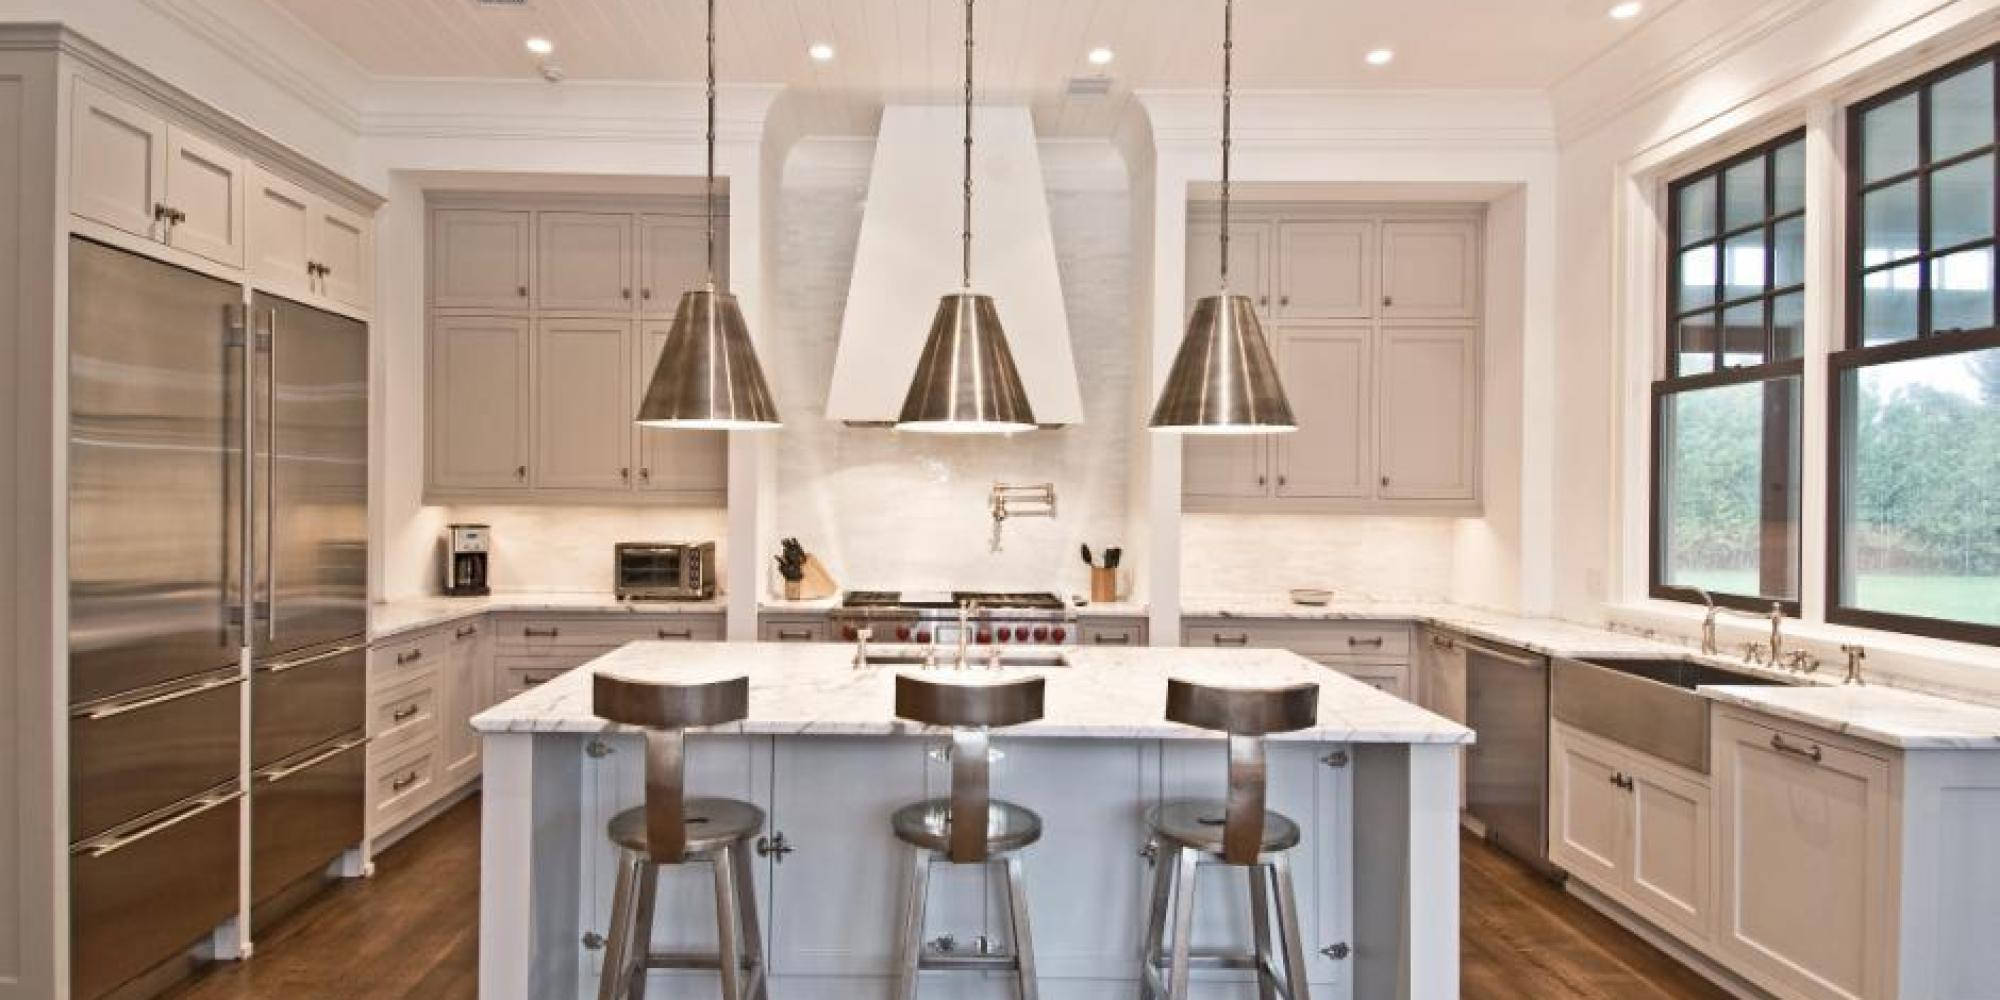 Paint Colour For Kitchen The Best Paint Colors For Every Type Of Kitchen Huffpost